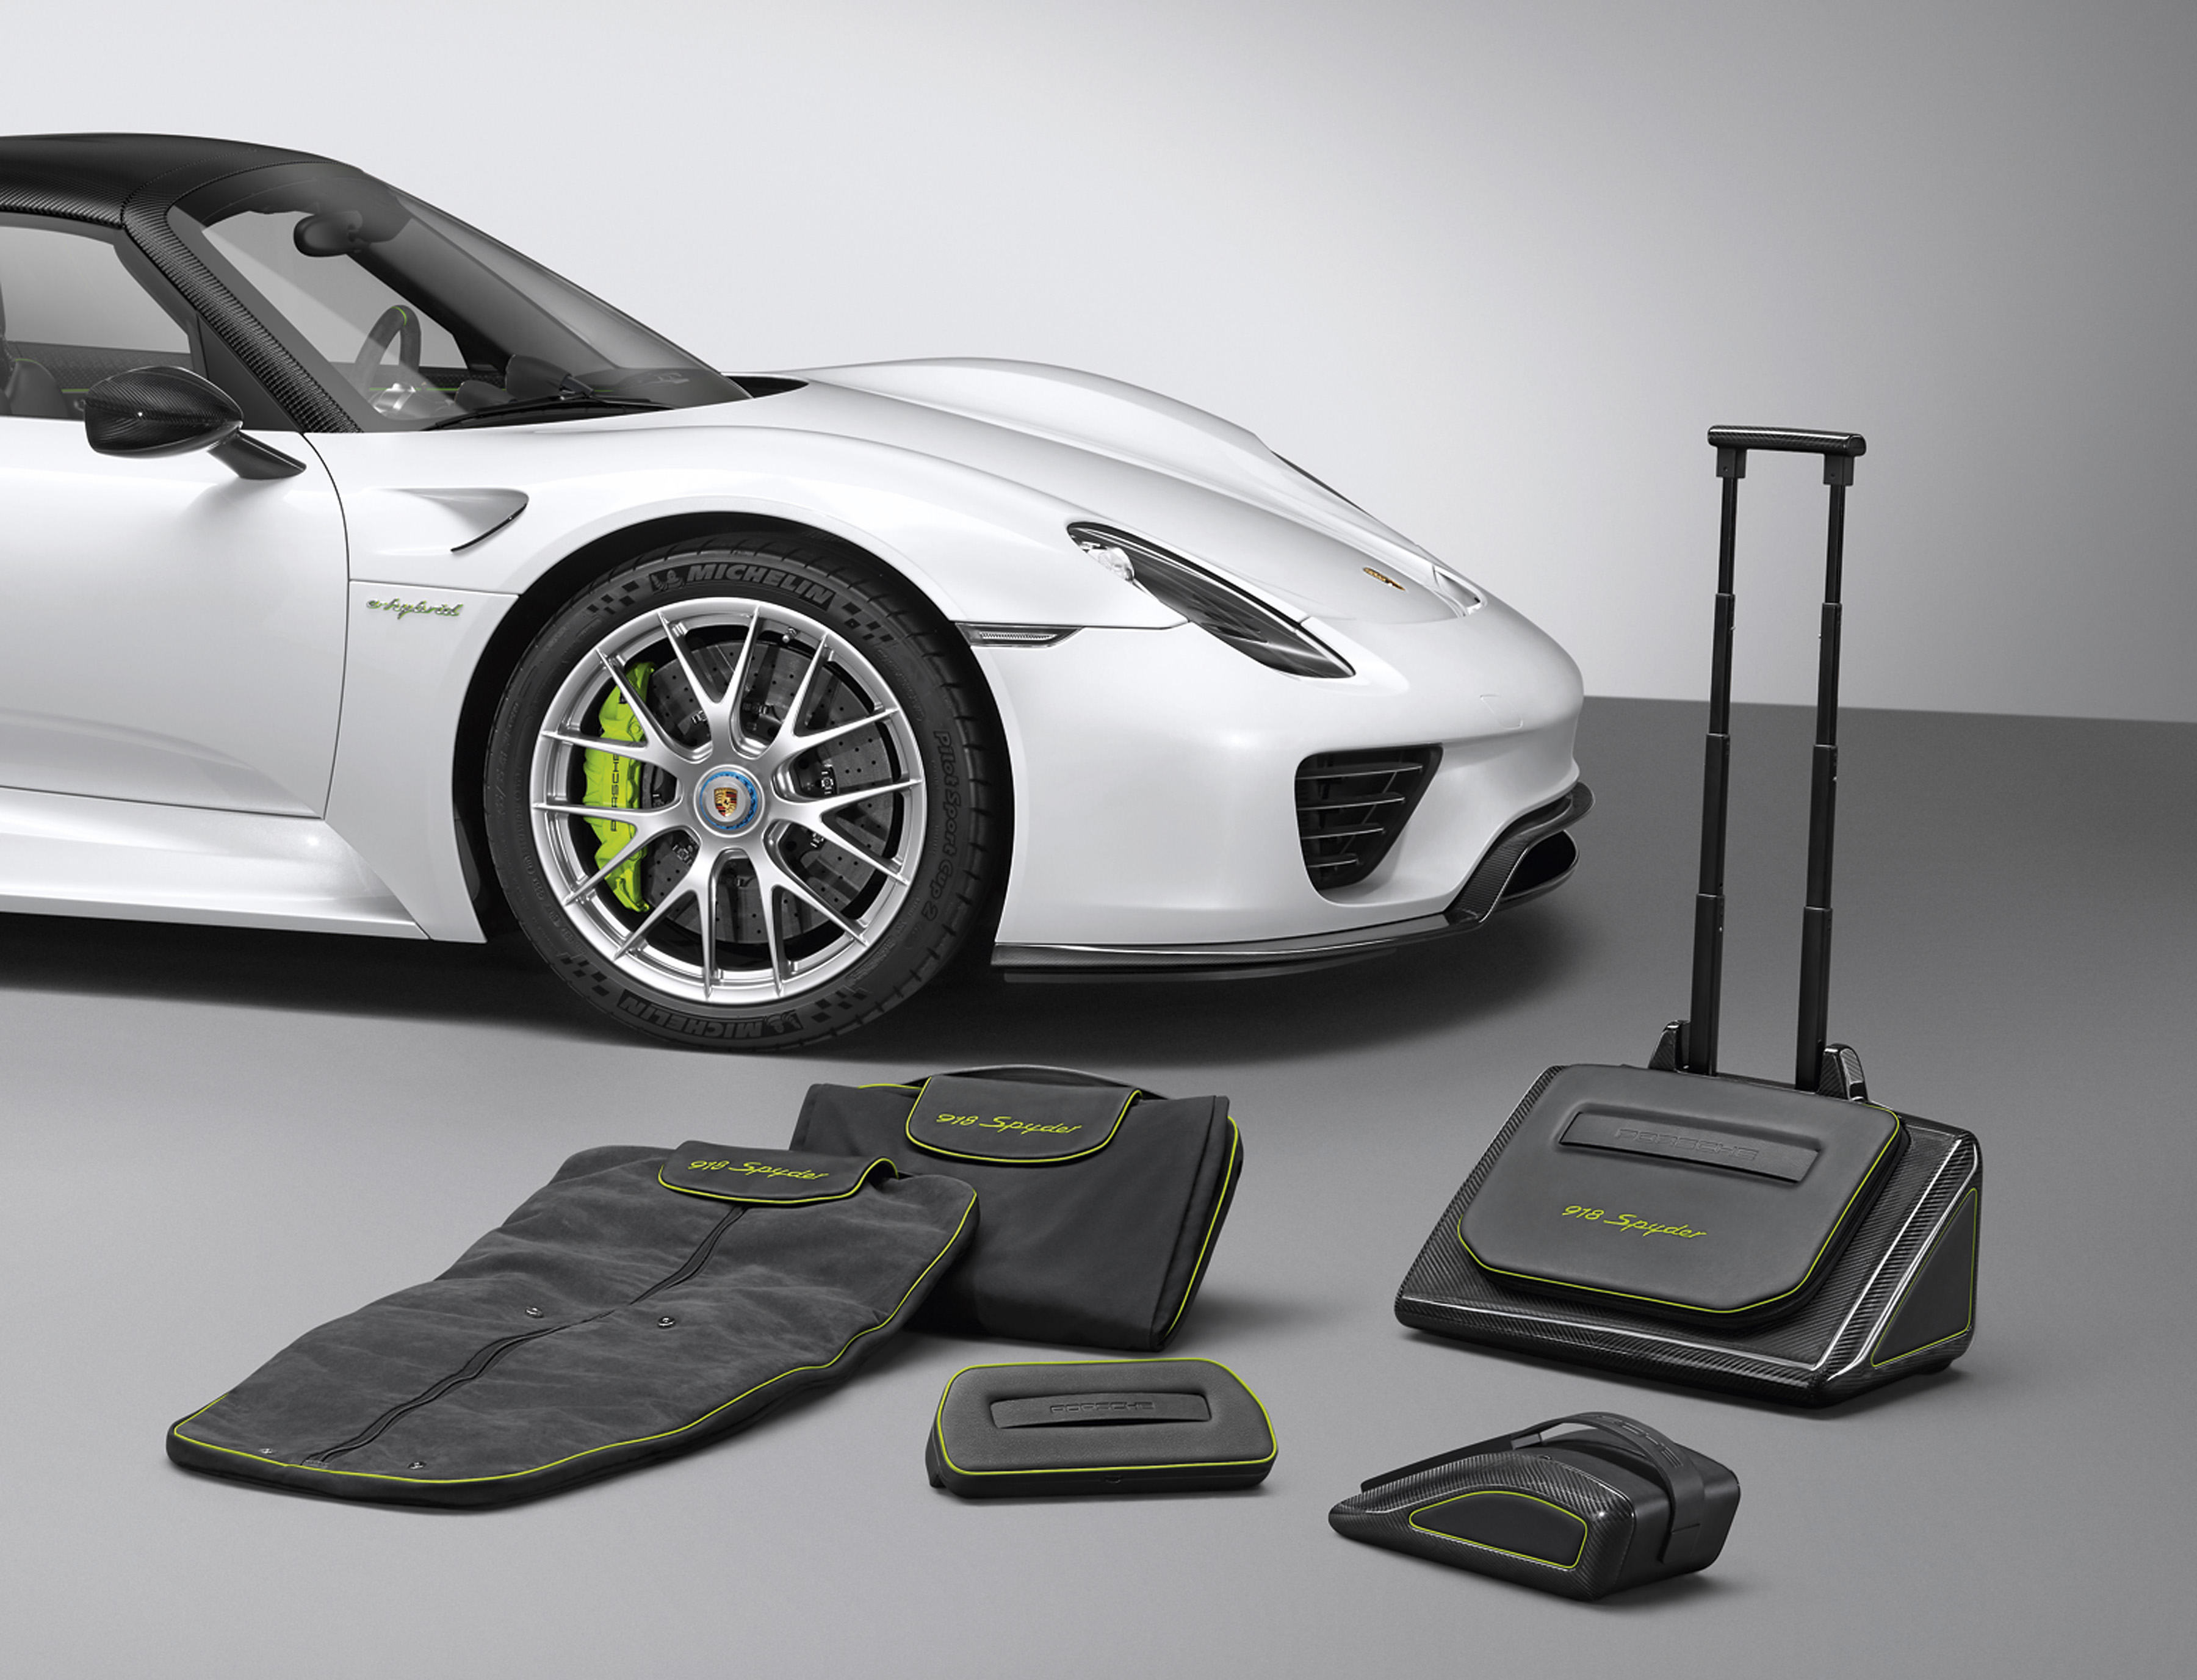 video travel in style in the porsche 918 spyder luggage set porsche everyday dedeporsches blog. Black Bedroom Furniture Sets. Home Design Ideas